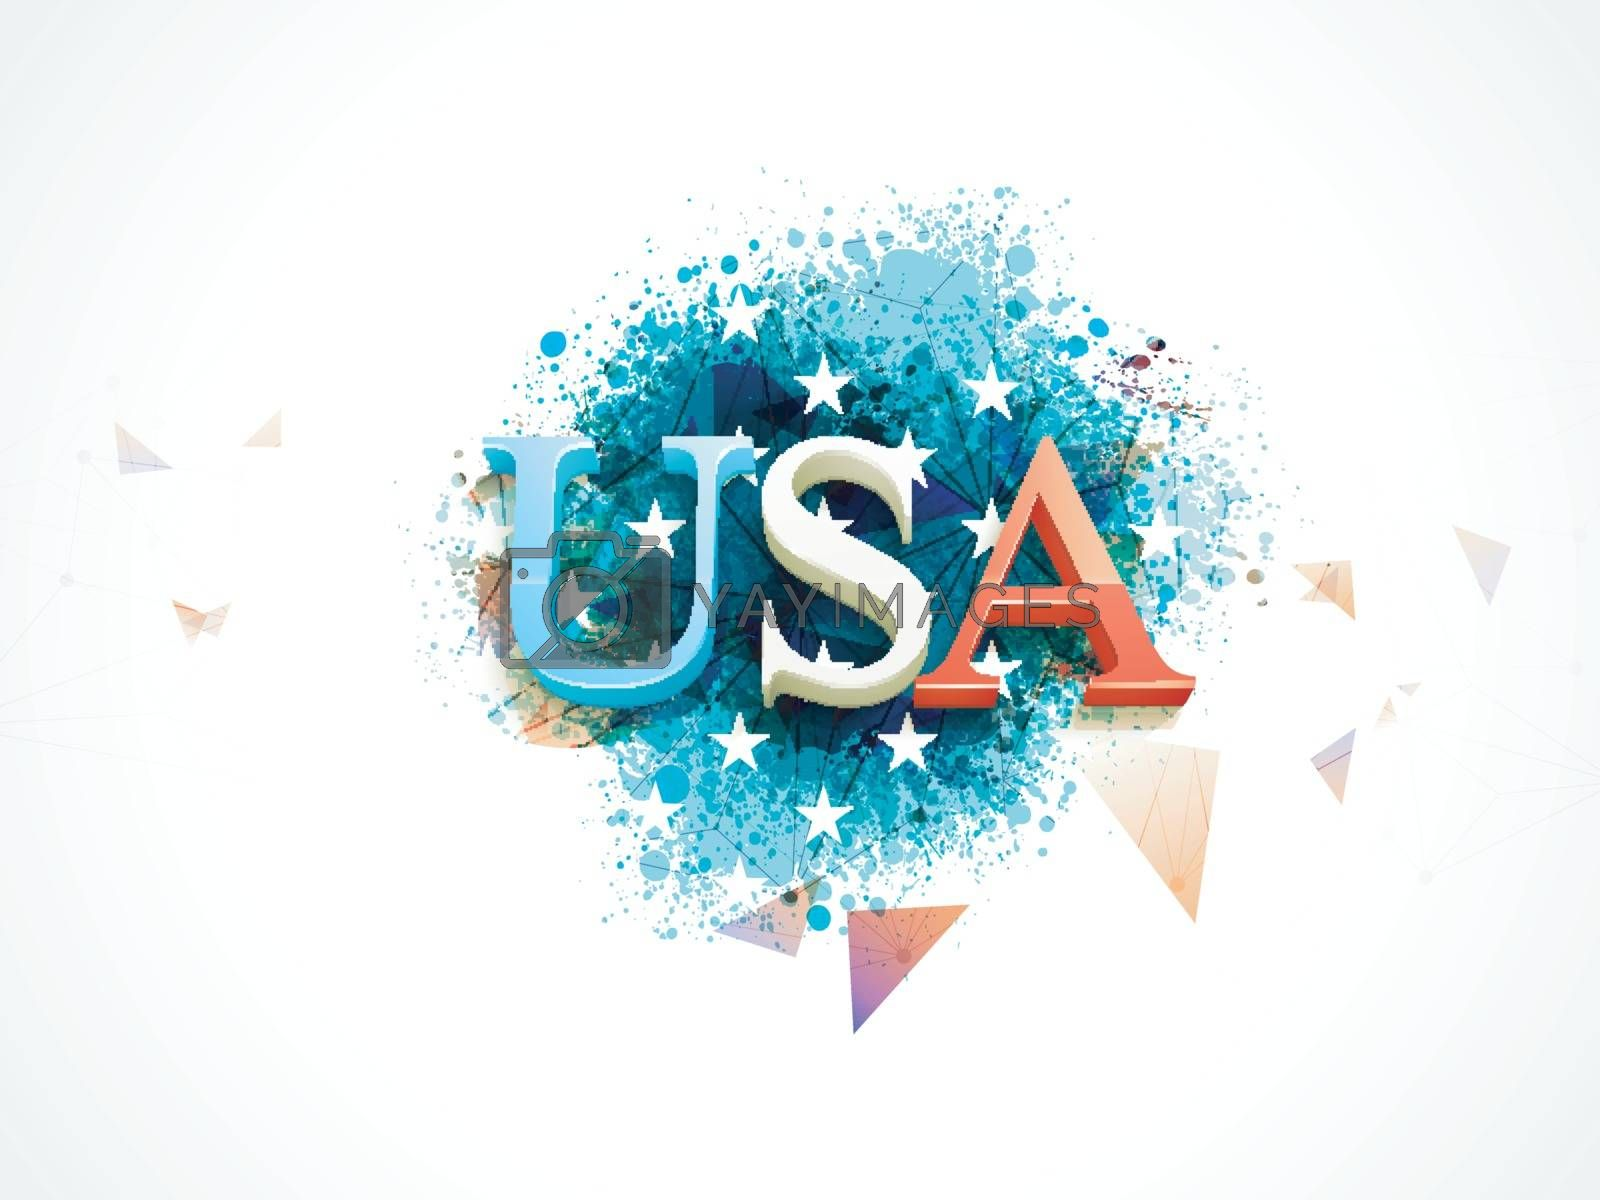 Abstract splash background with USA text design in American Flag colors for 4th of July, Independence Day concept.